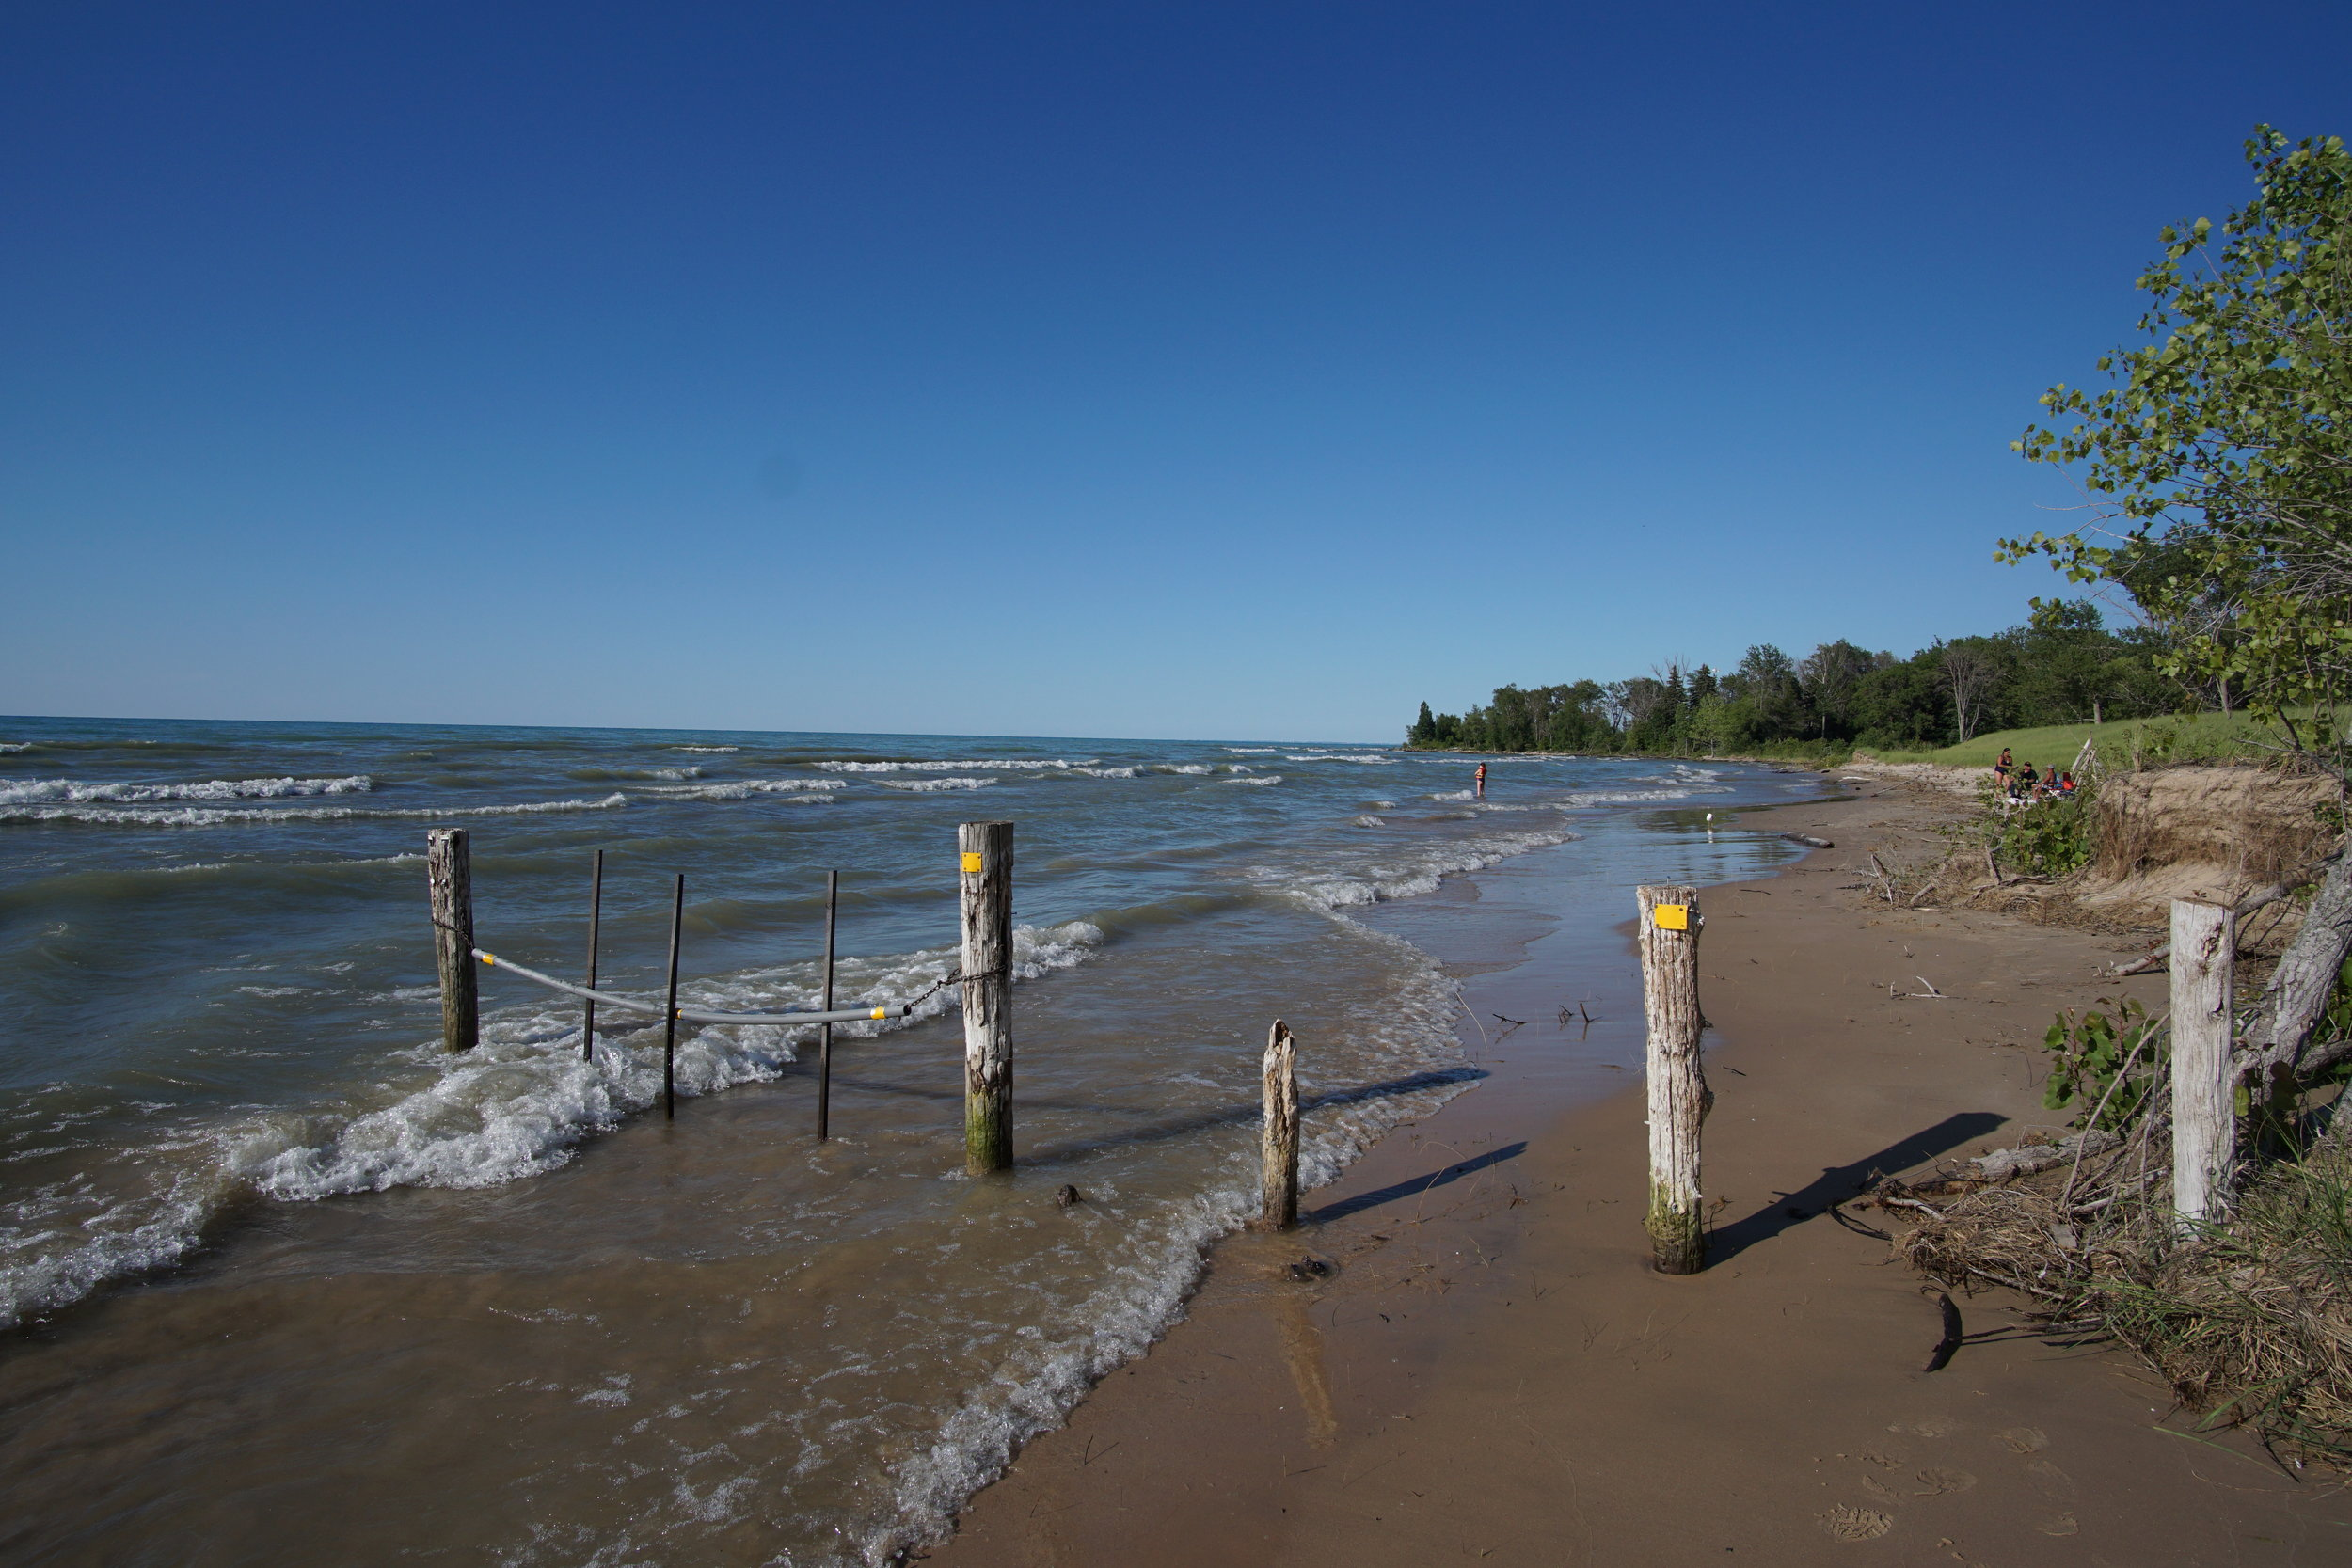 Ipperwash Beach, Lake Huron, Ontario